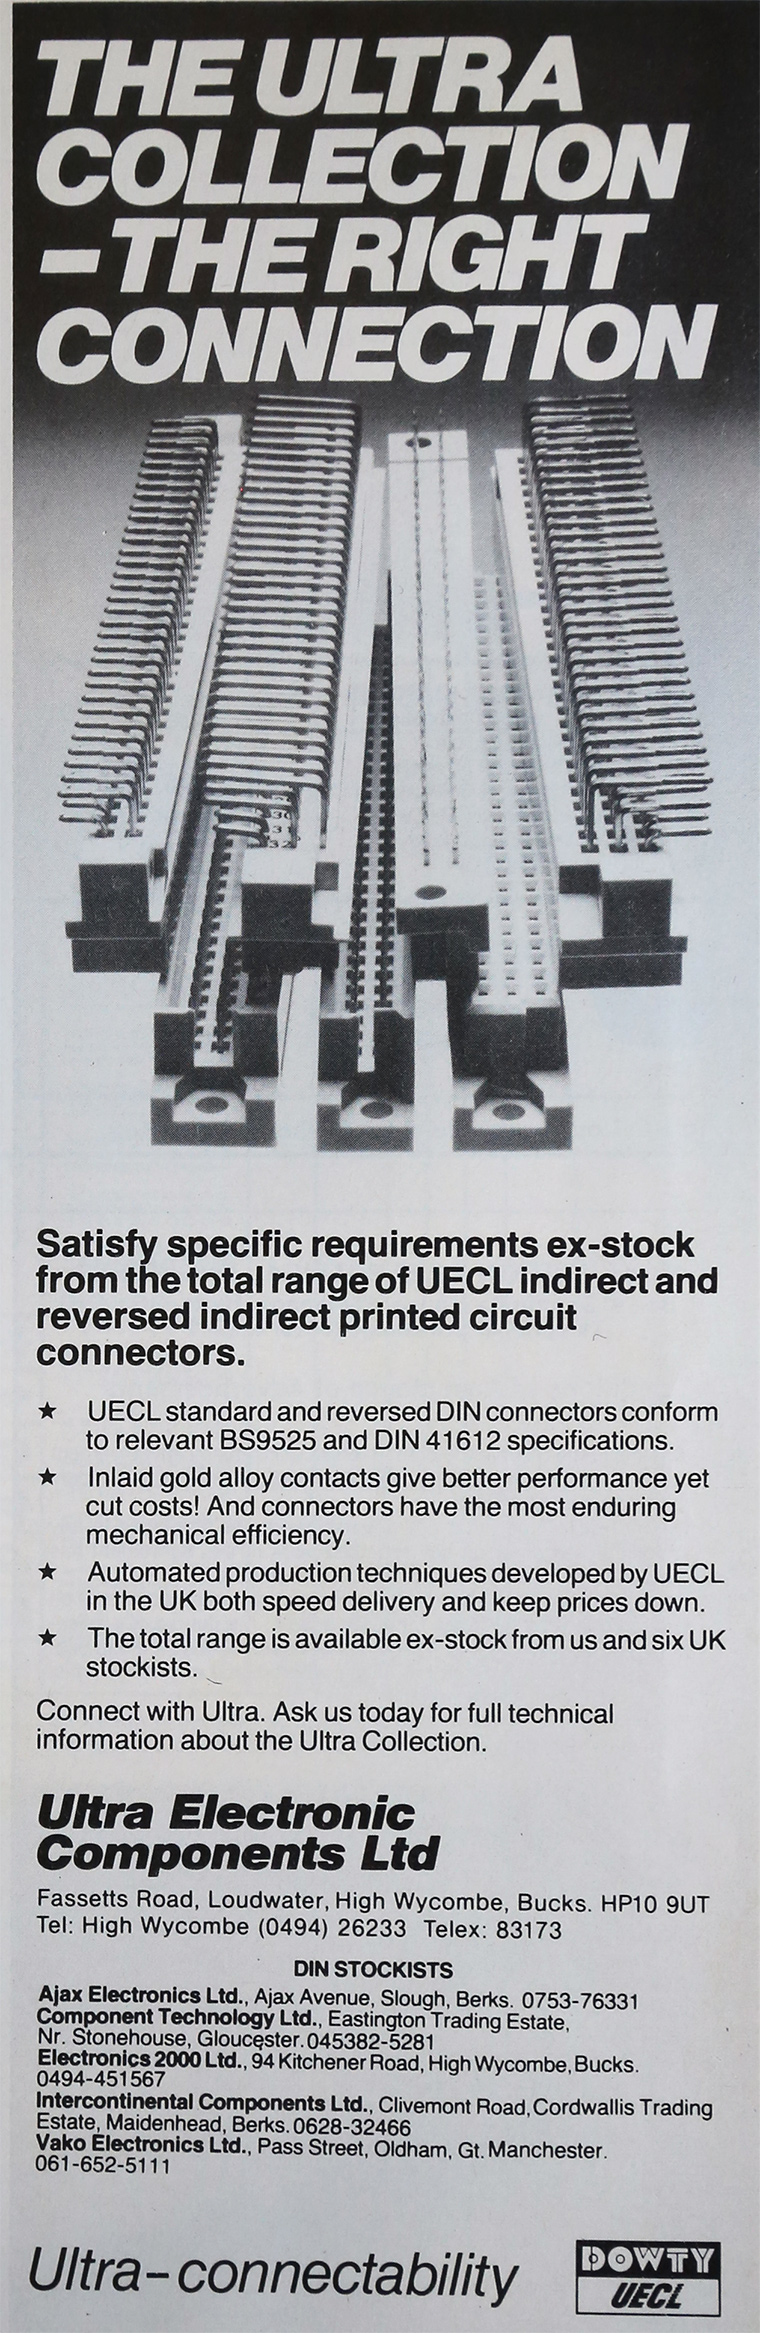 Ultra Electronic Components - Graces Guide